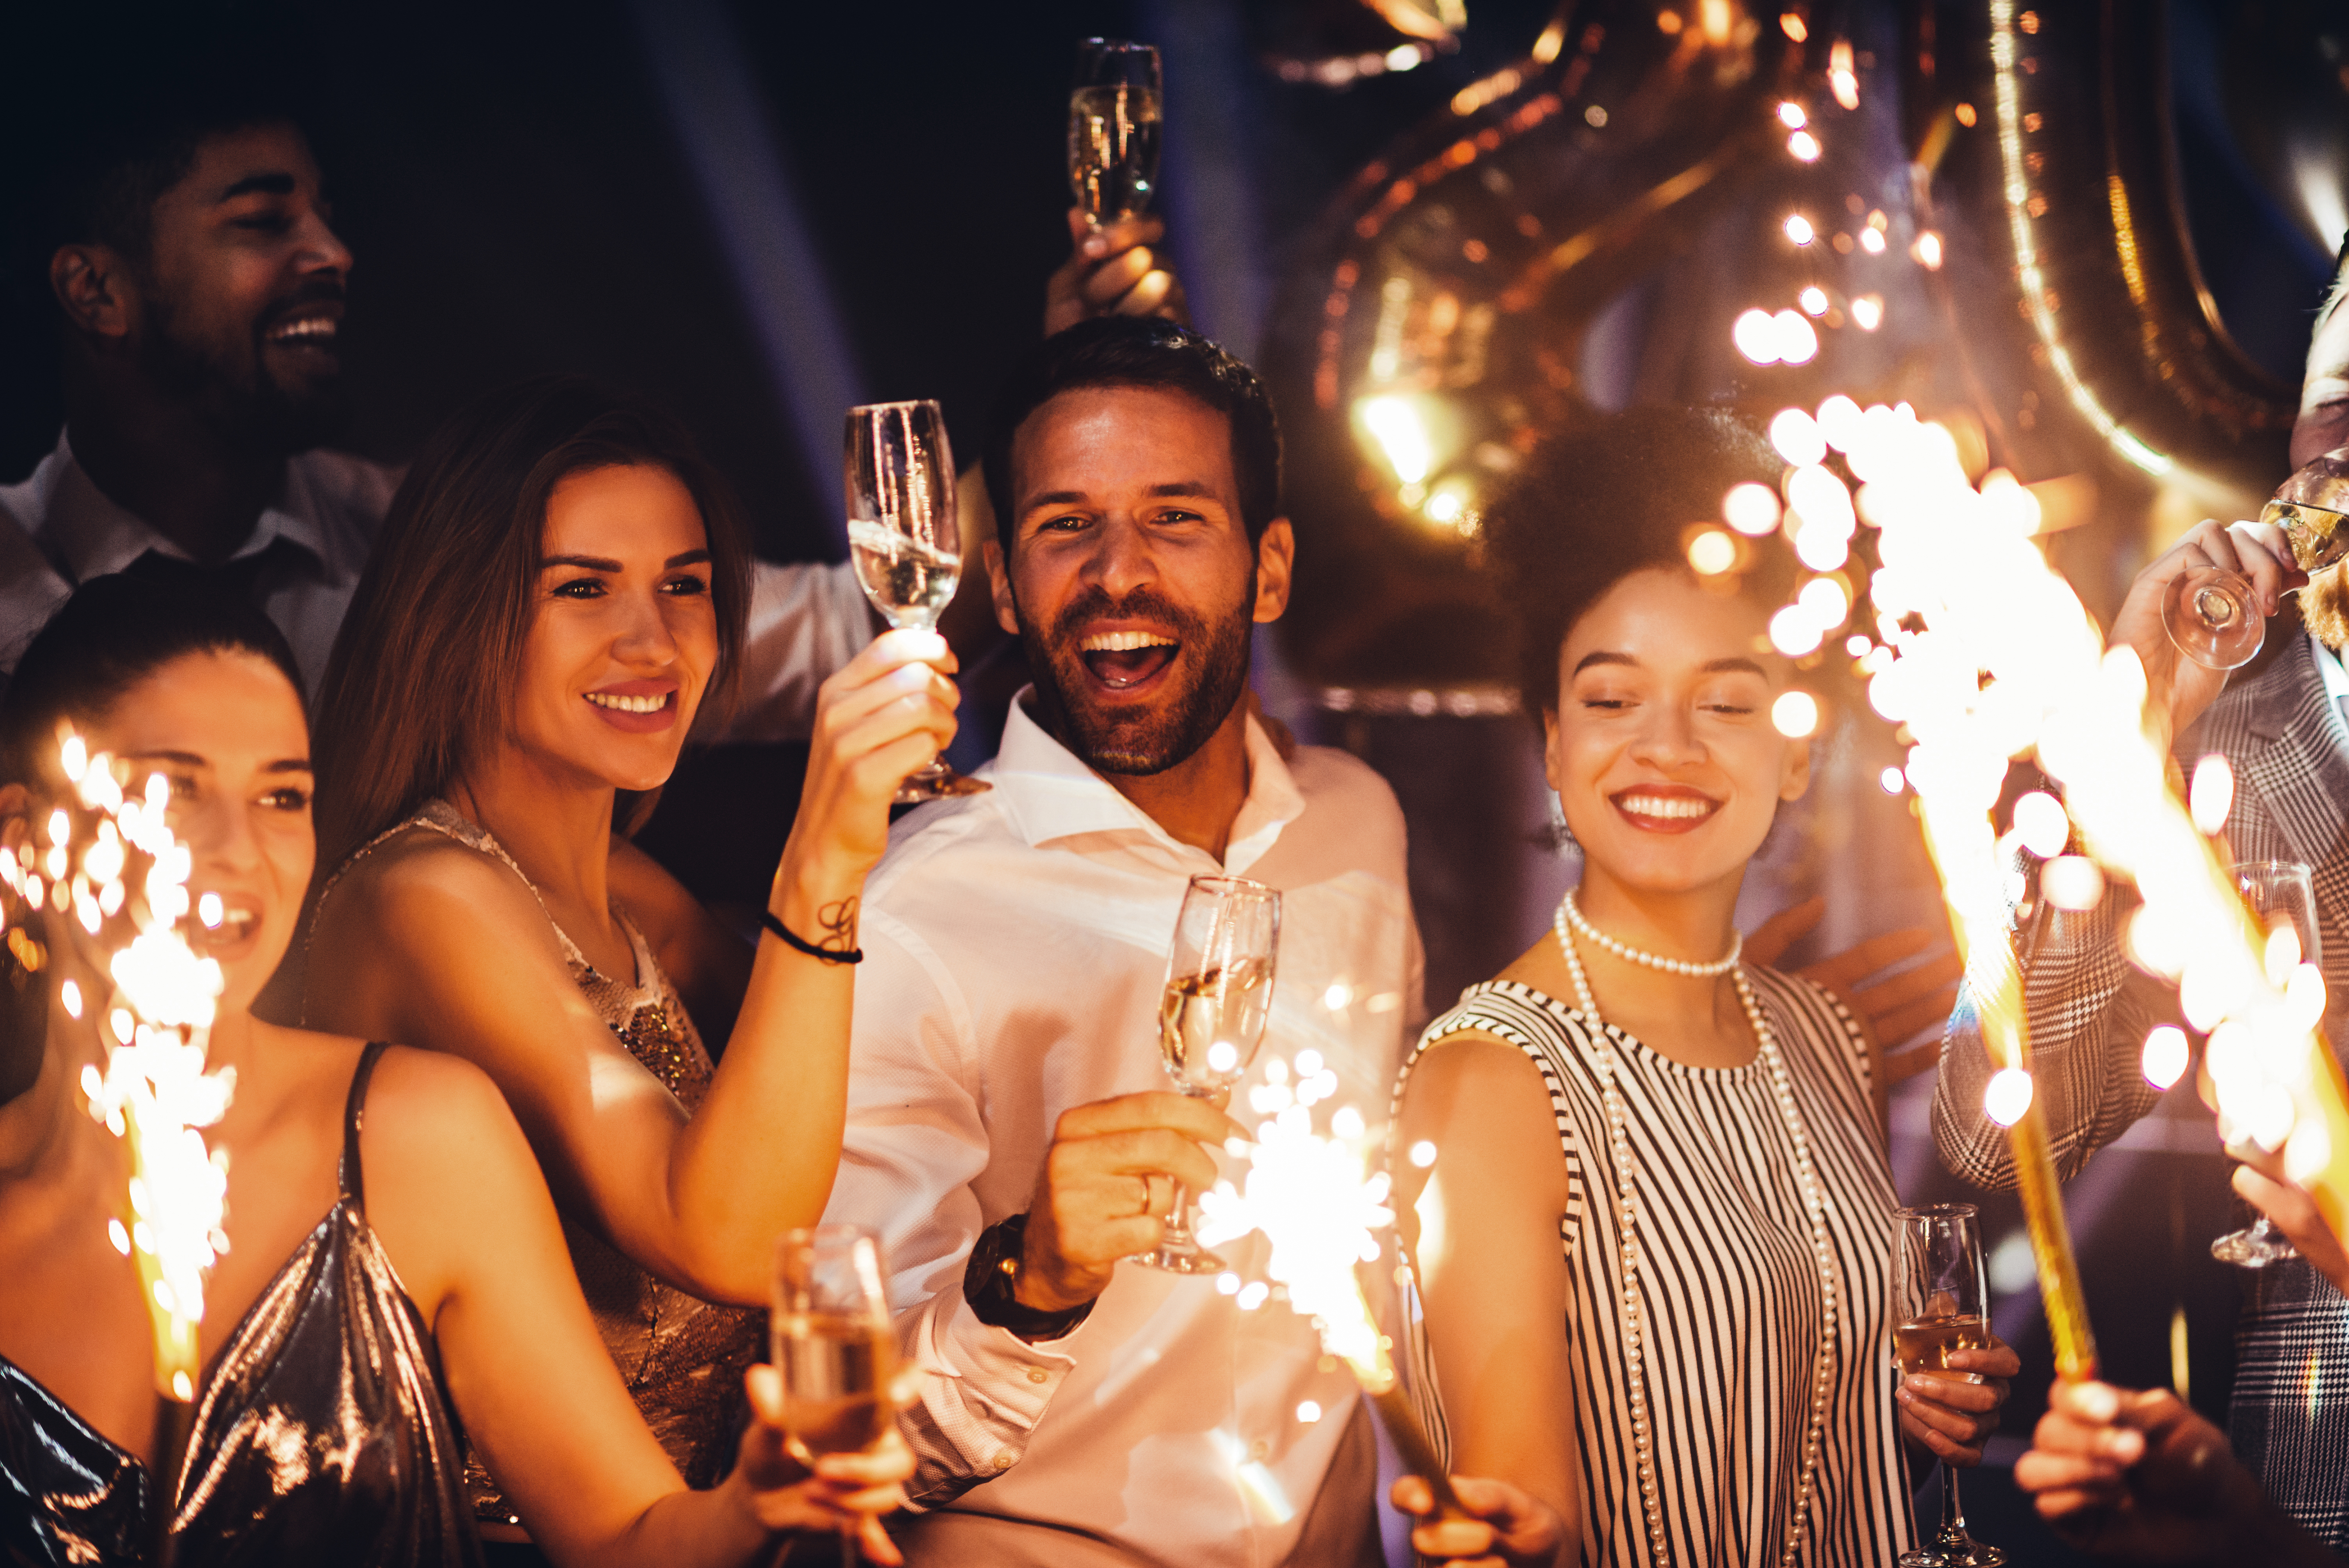 NYE Party with Friends